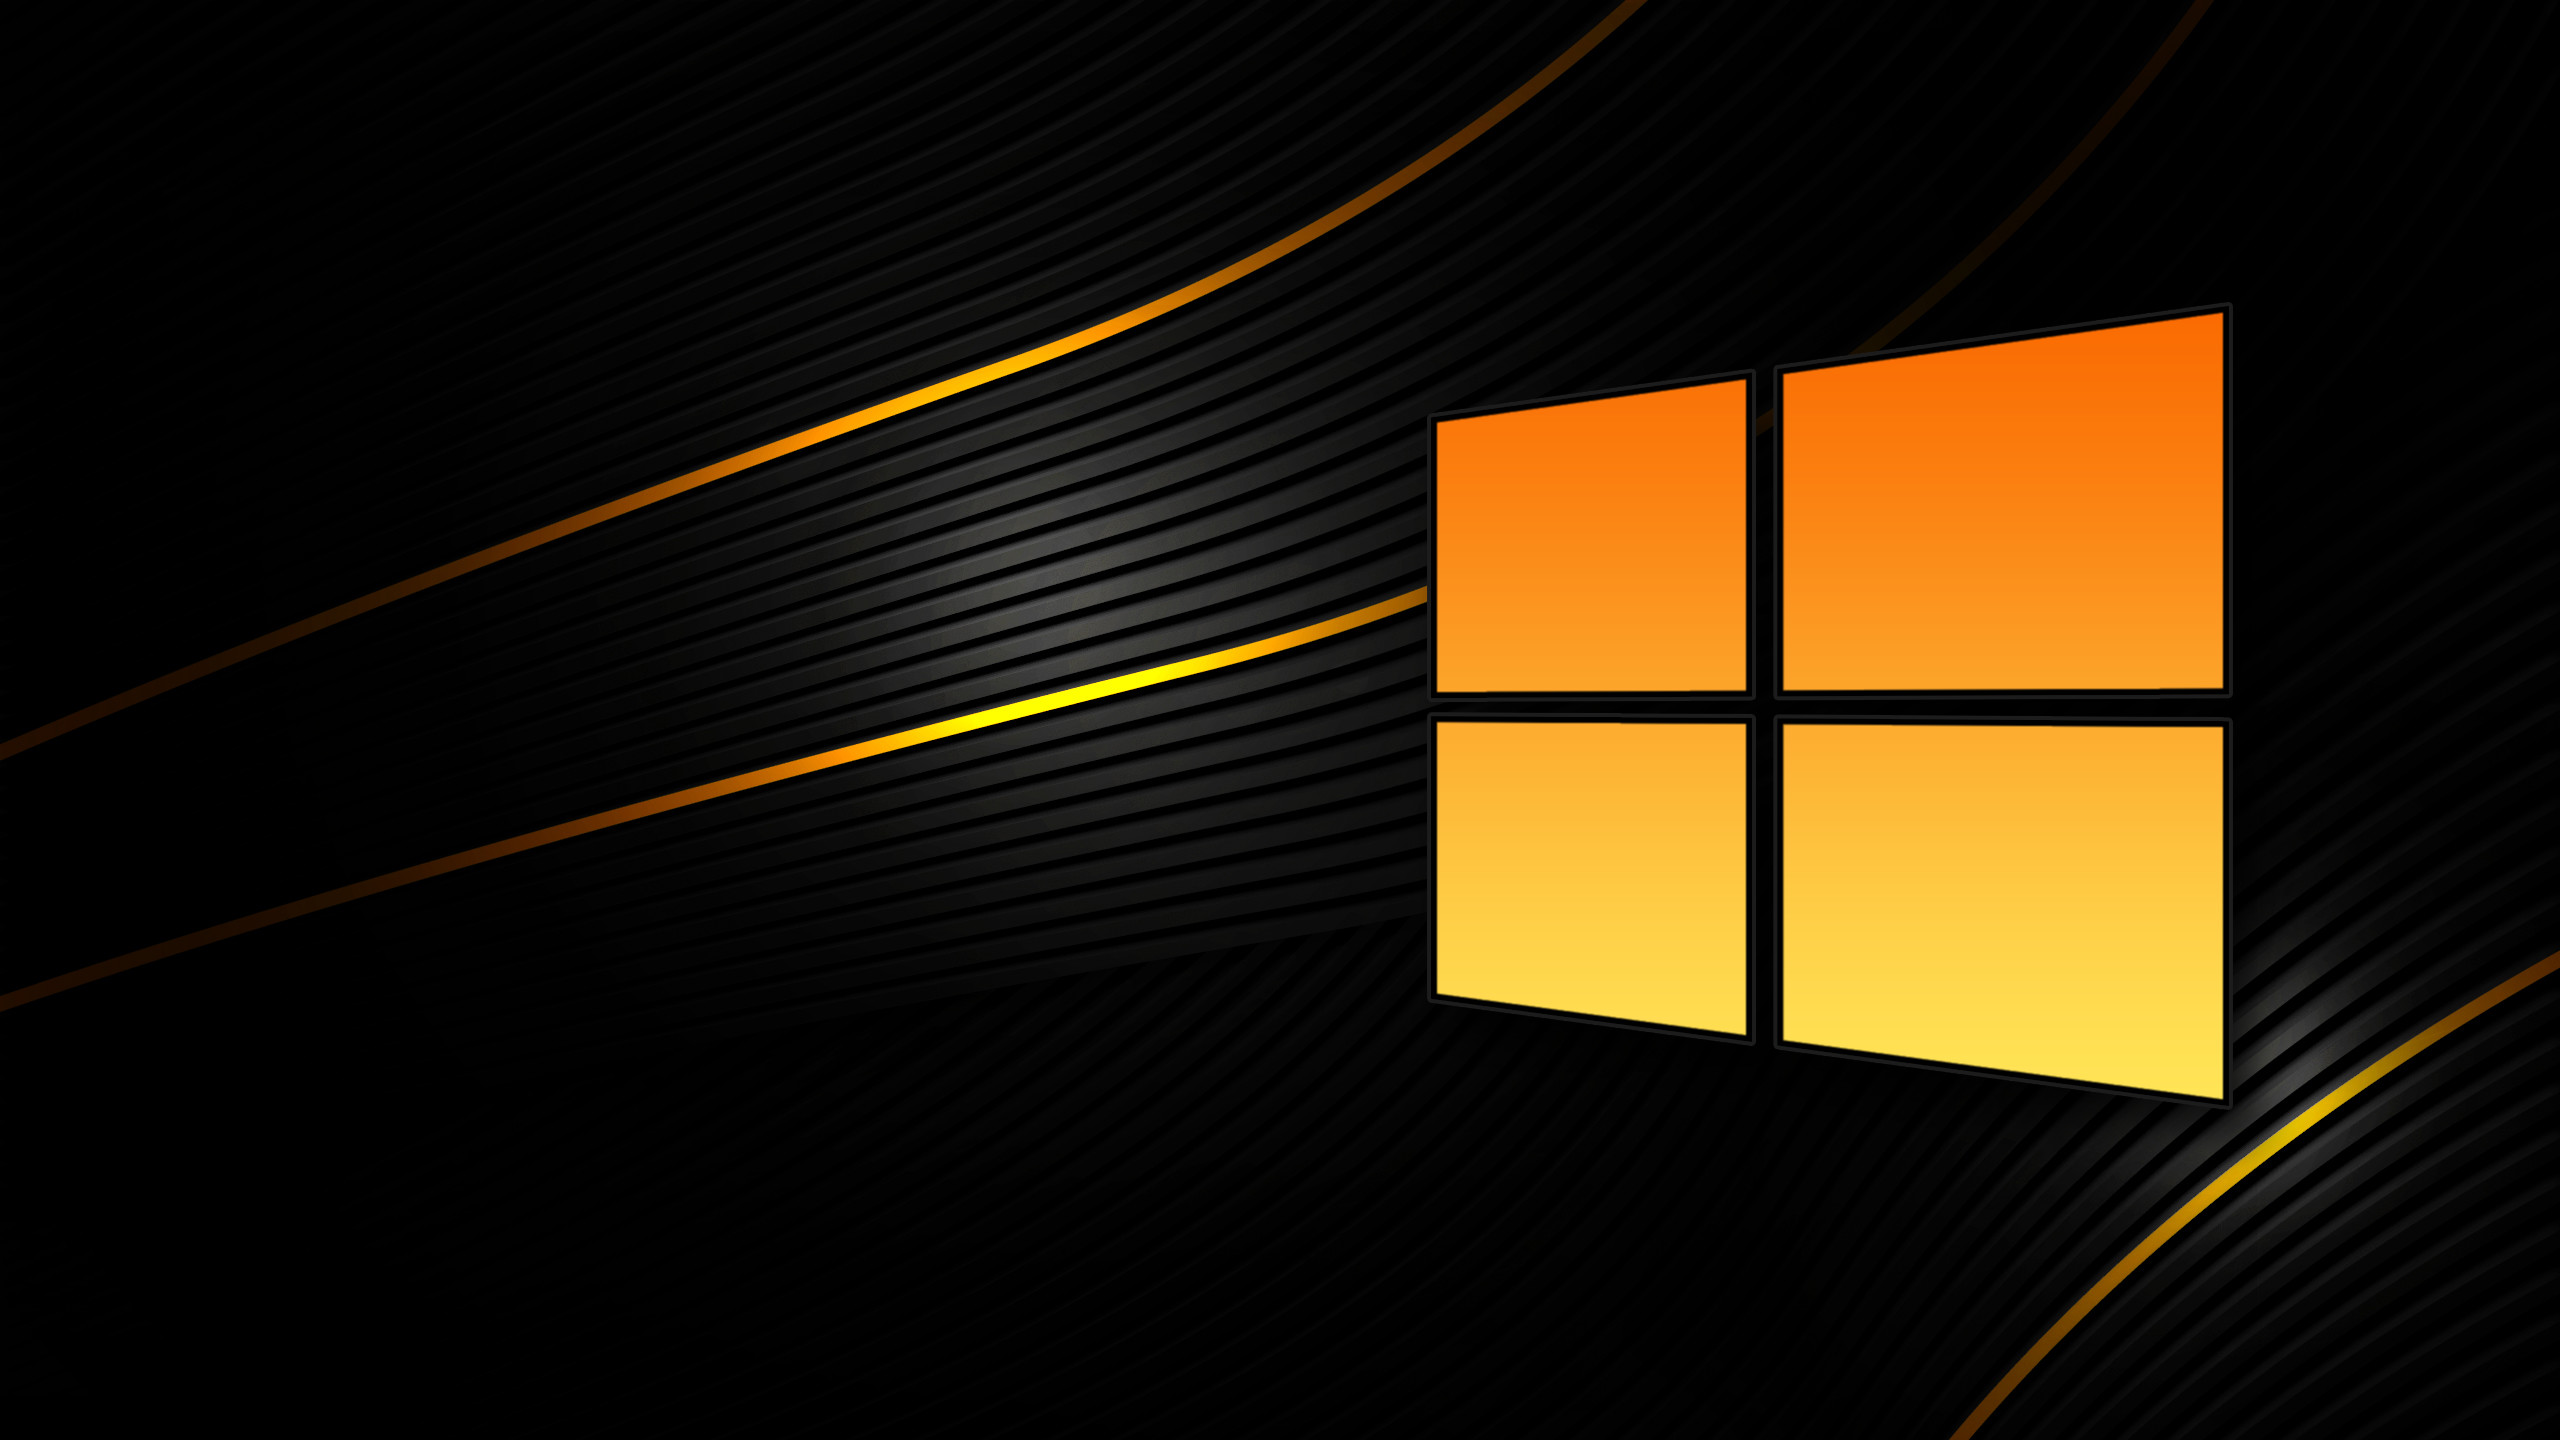 2560x1440 PC Lock Screen Windows 10 Wallpaper NMCP